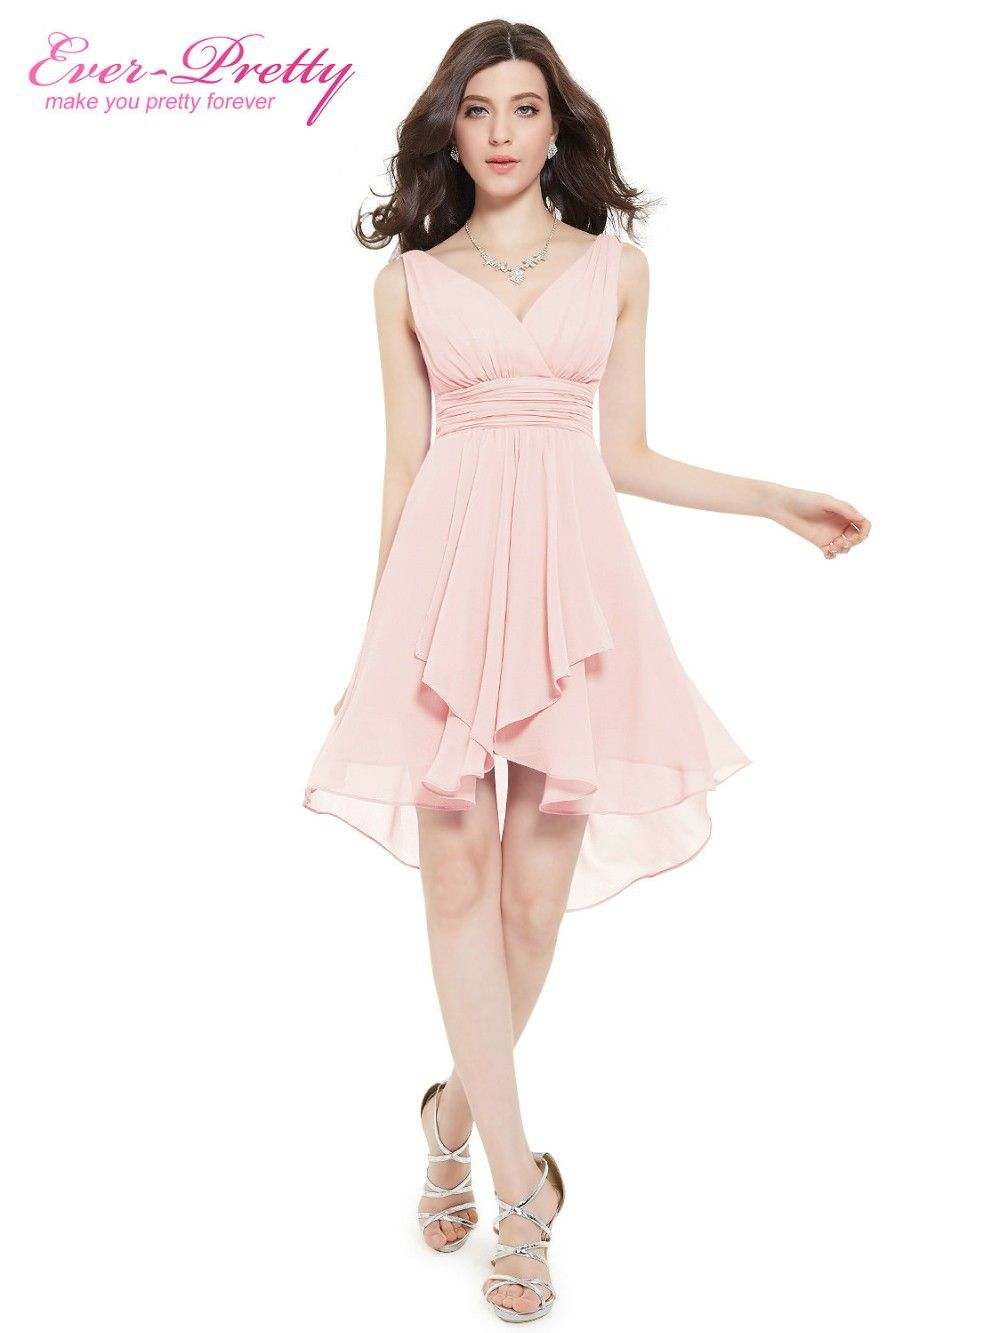 Short wedding bridesmaid dresses ever pretty coral colored ruffled v